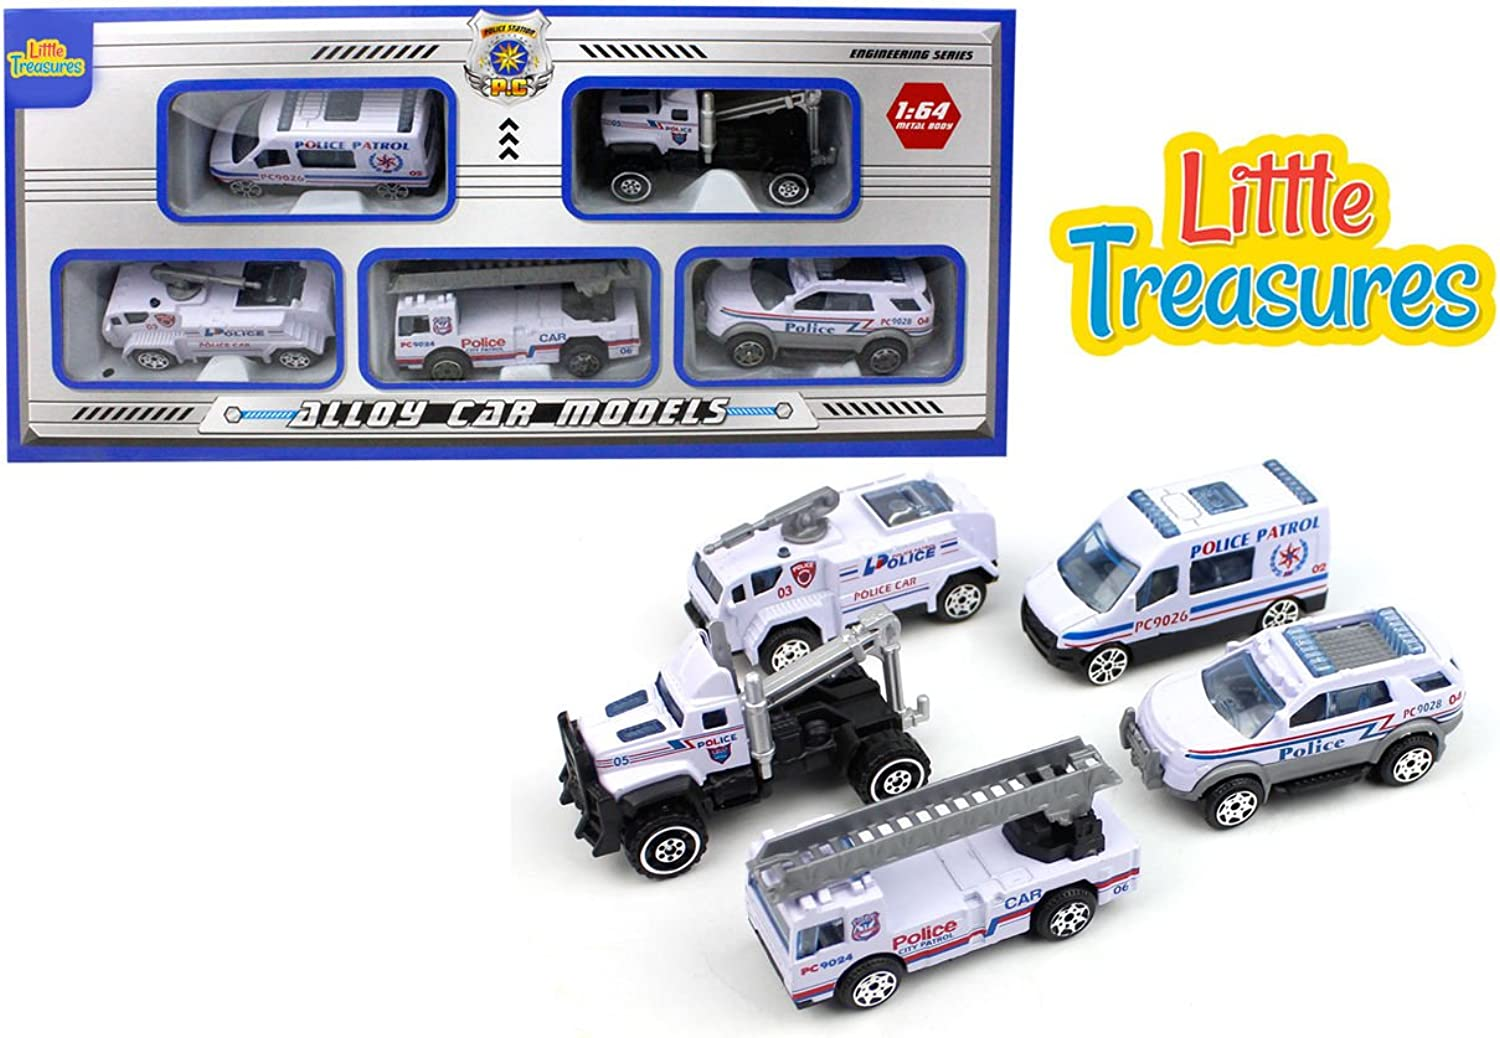 A coolly ordered, disciplined toy  Little Treasure in a telling, white dramatic with distinct alloy car models to effect the Police influence around